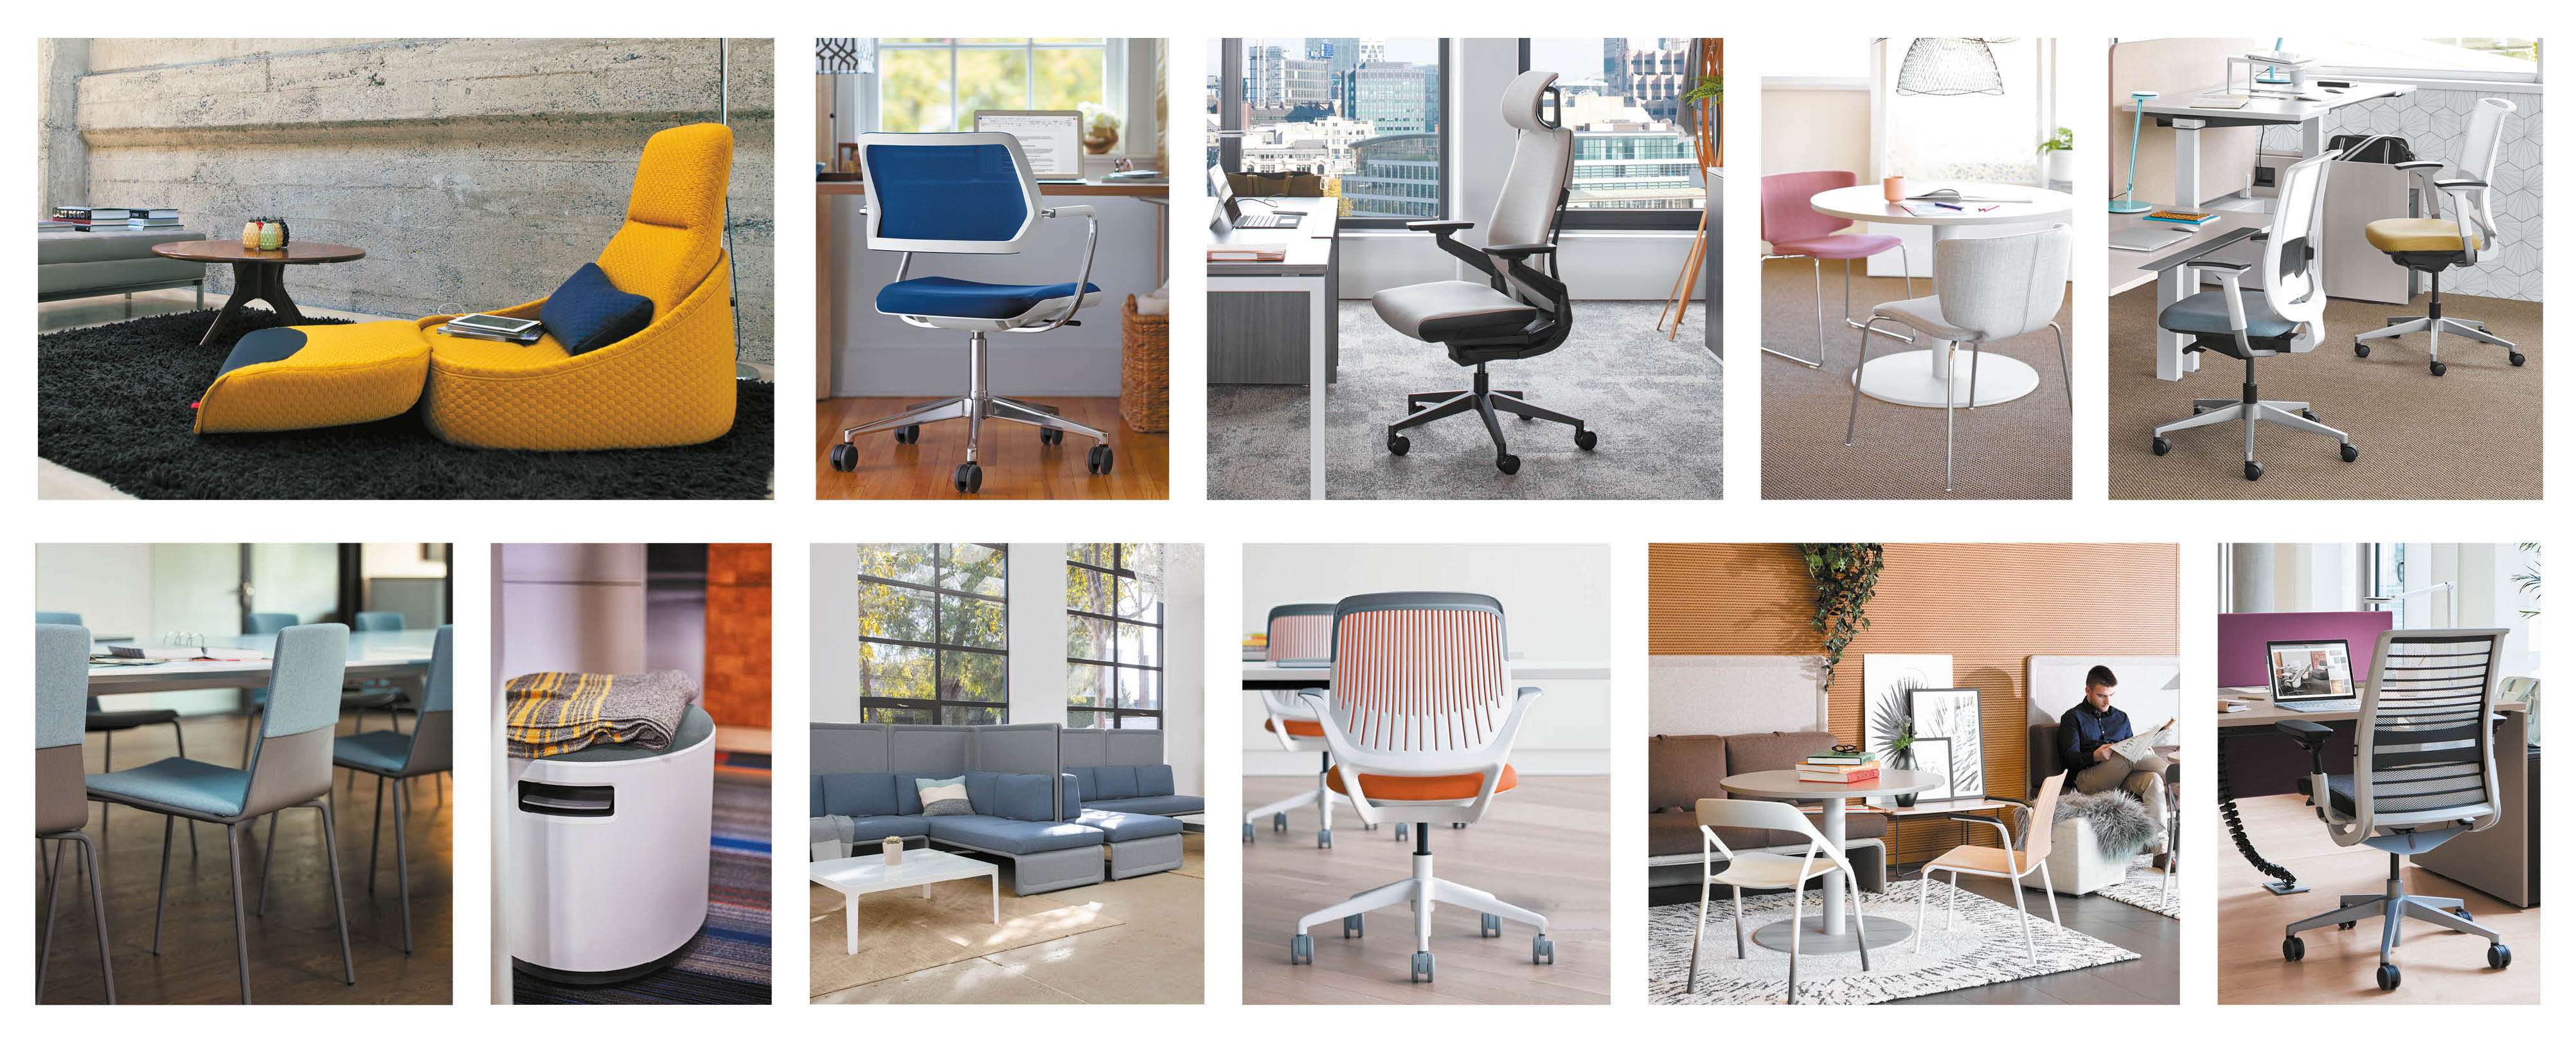 hospital sleeper chair height adjustable high baby modern office sofas chairs steelcase the seating difference